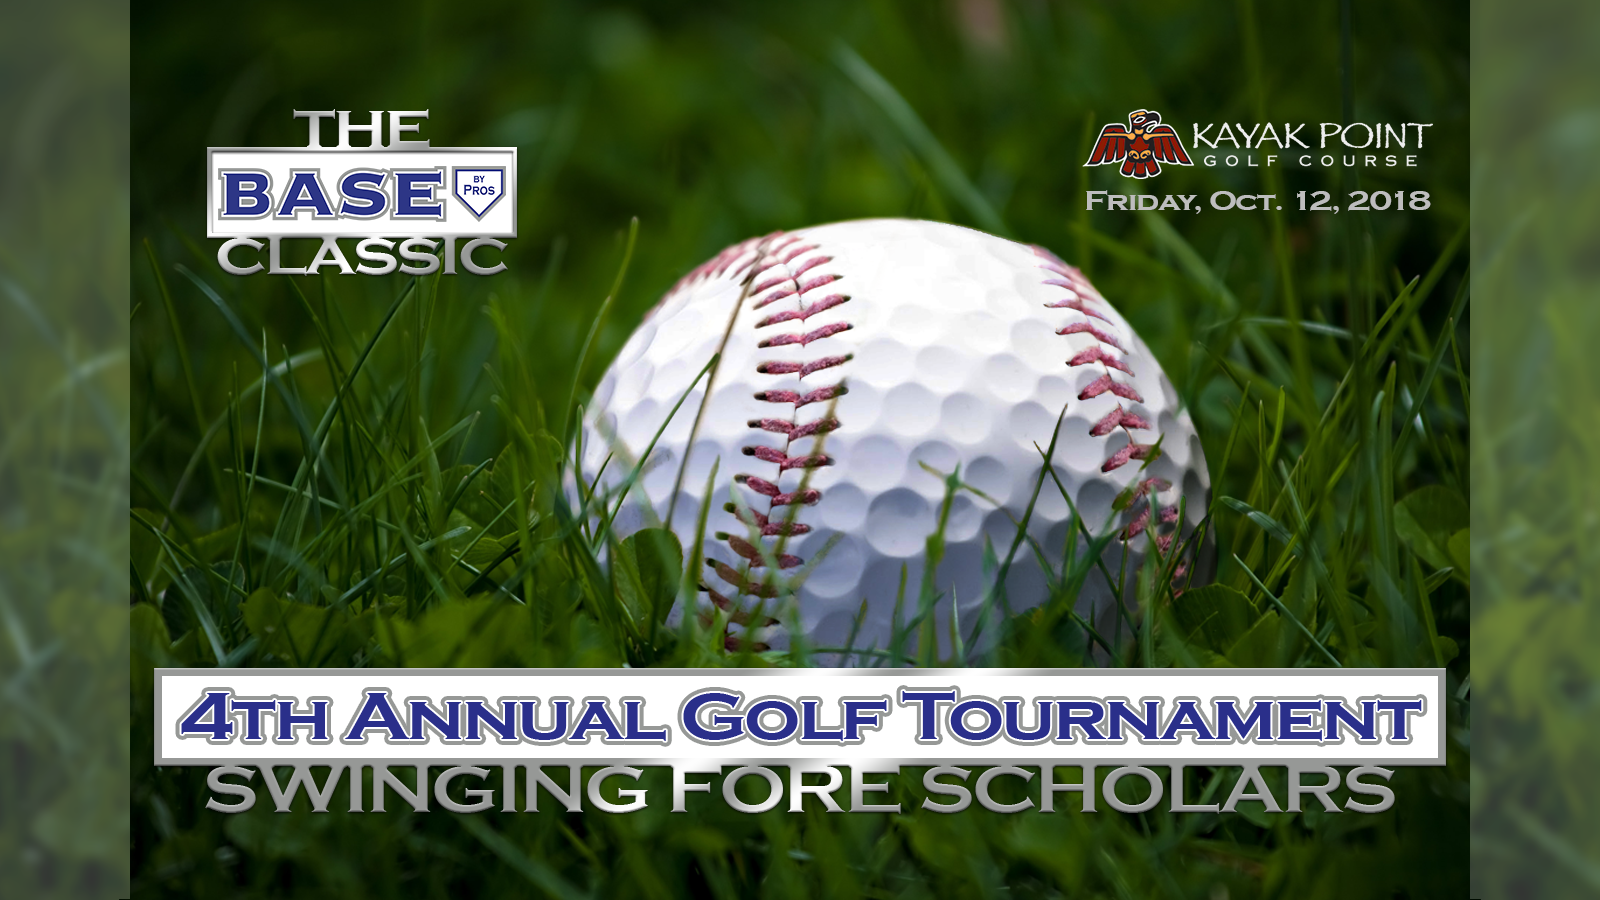 The BASE by Pros Classic 4th Annual Golf Tournament